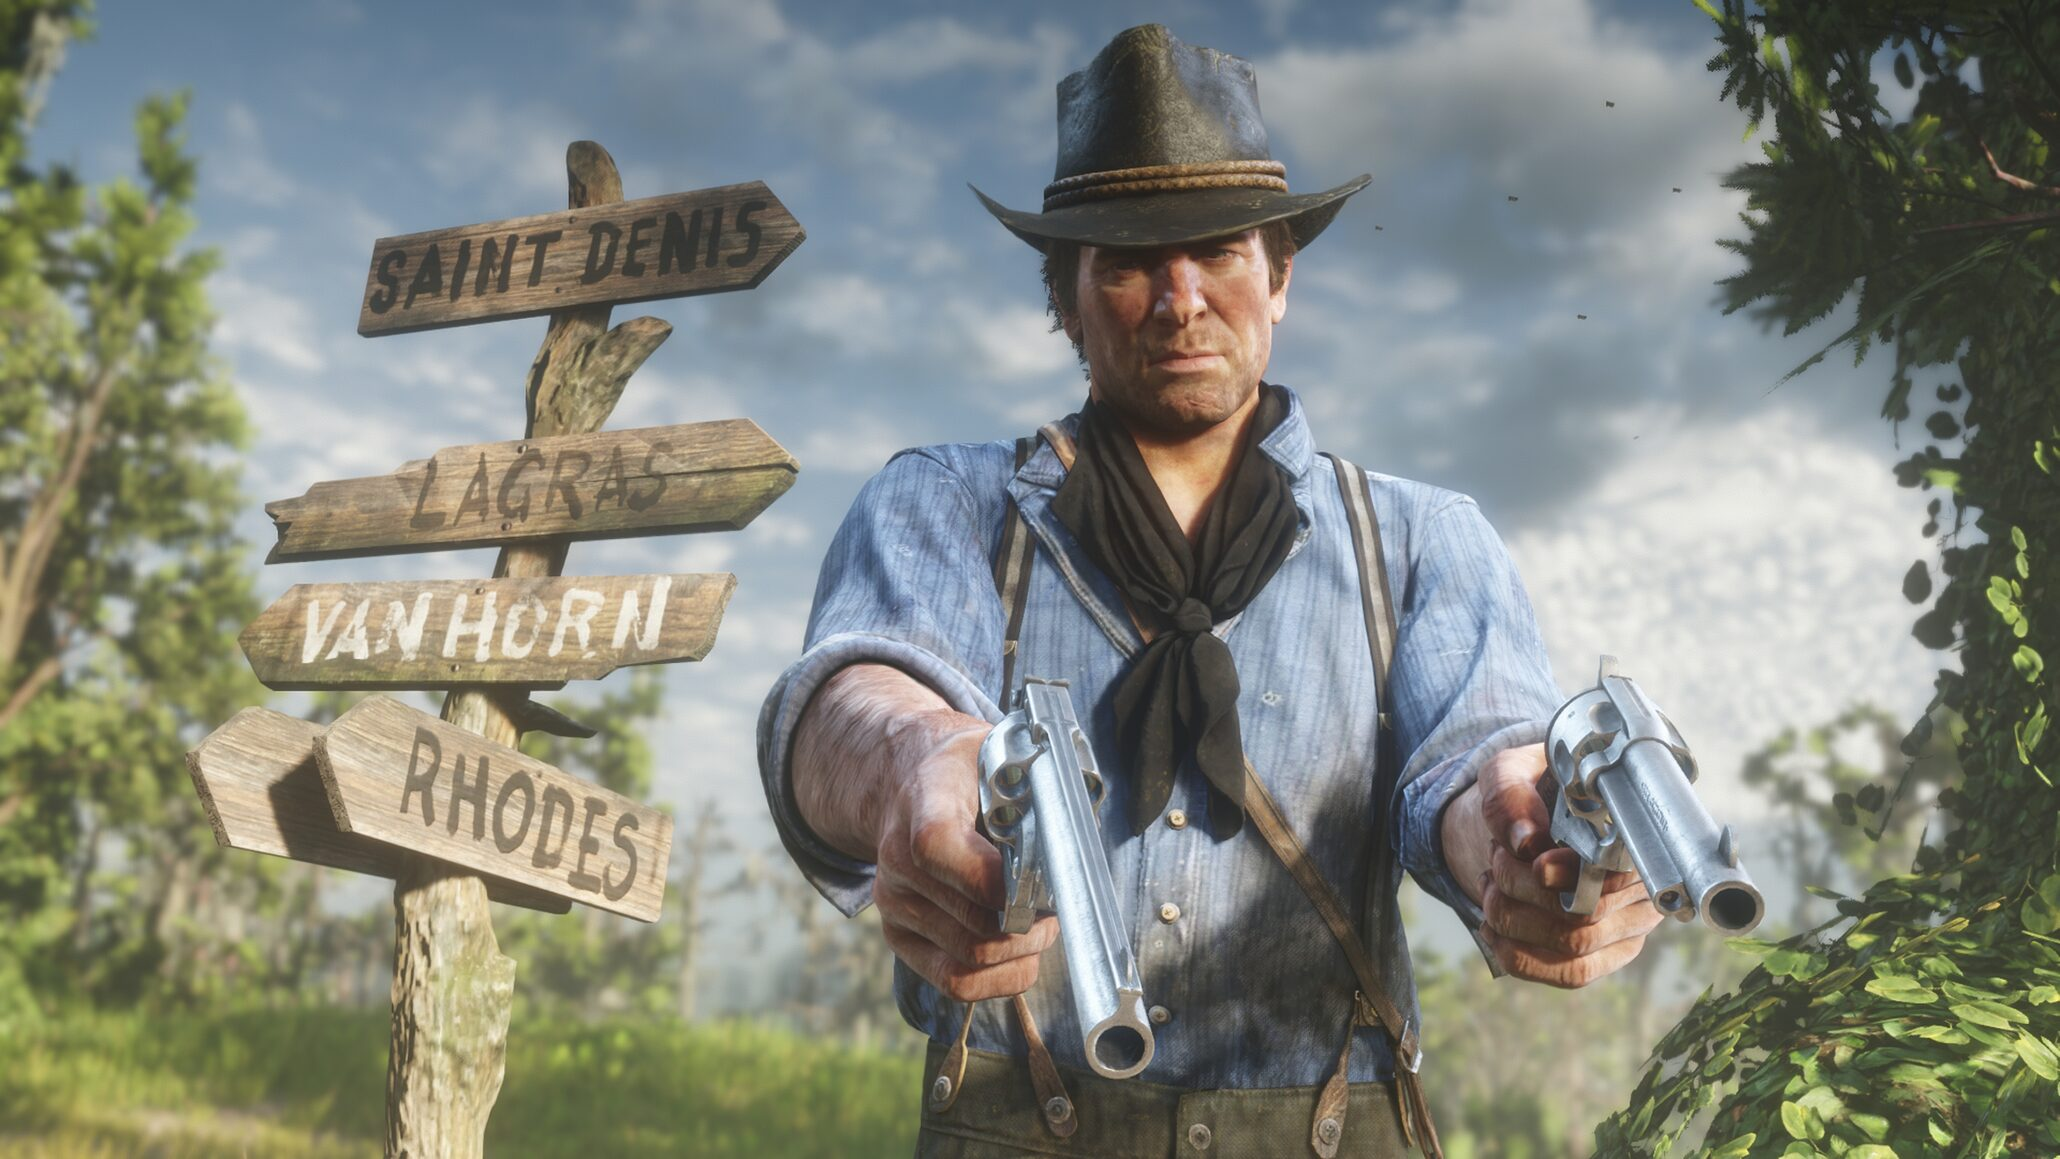 Red Dead Redemption 2 PC Looks More Likely After Strings and